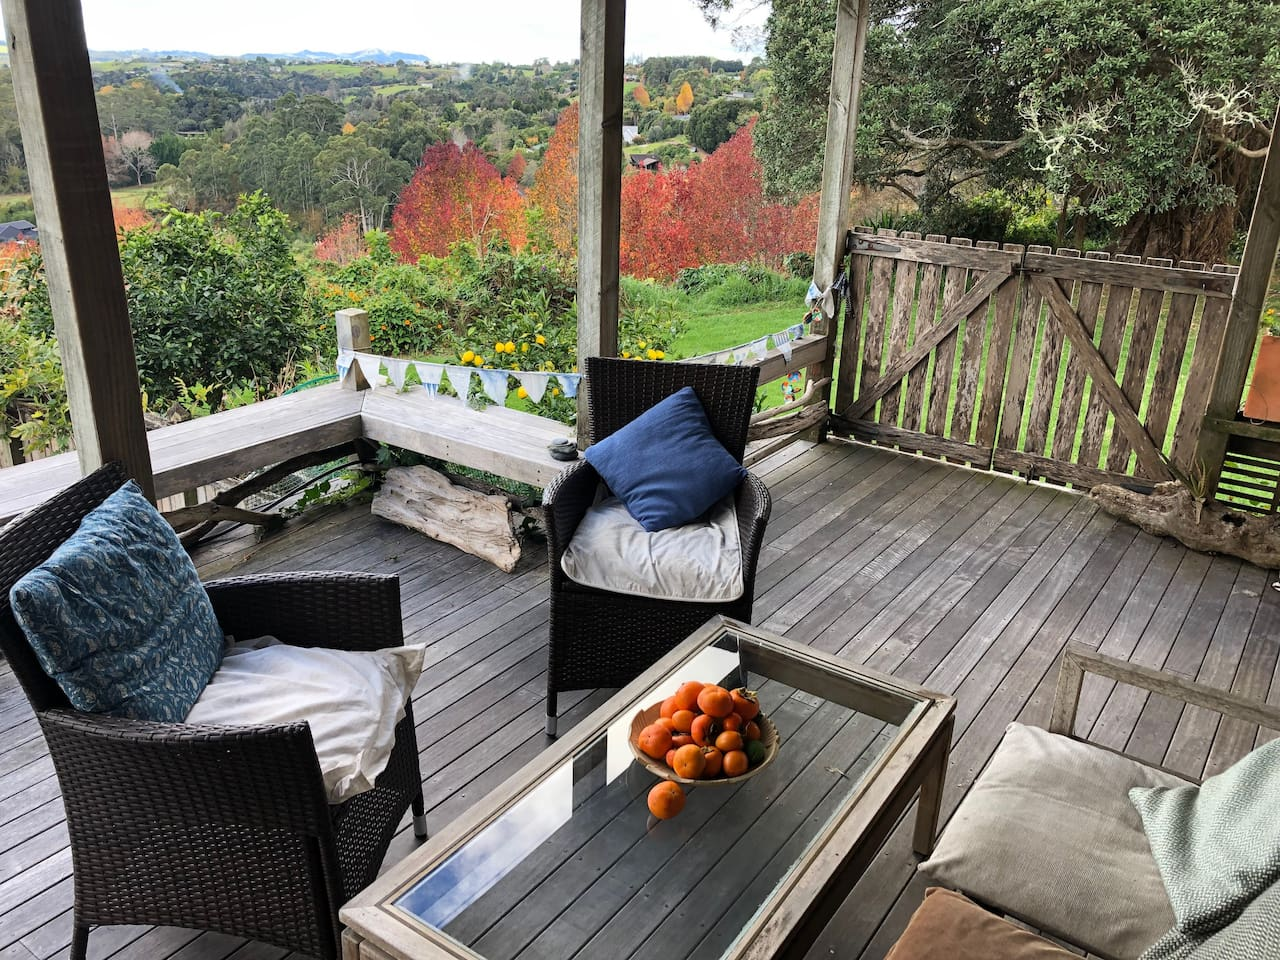 The autumn view of the valley from your private deck area. The persimmons are from the garden.